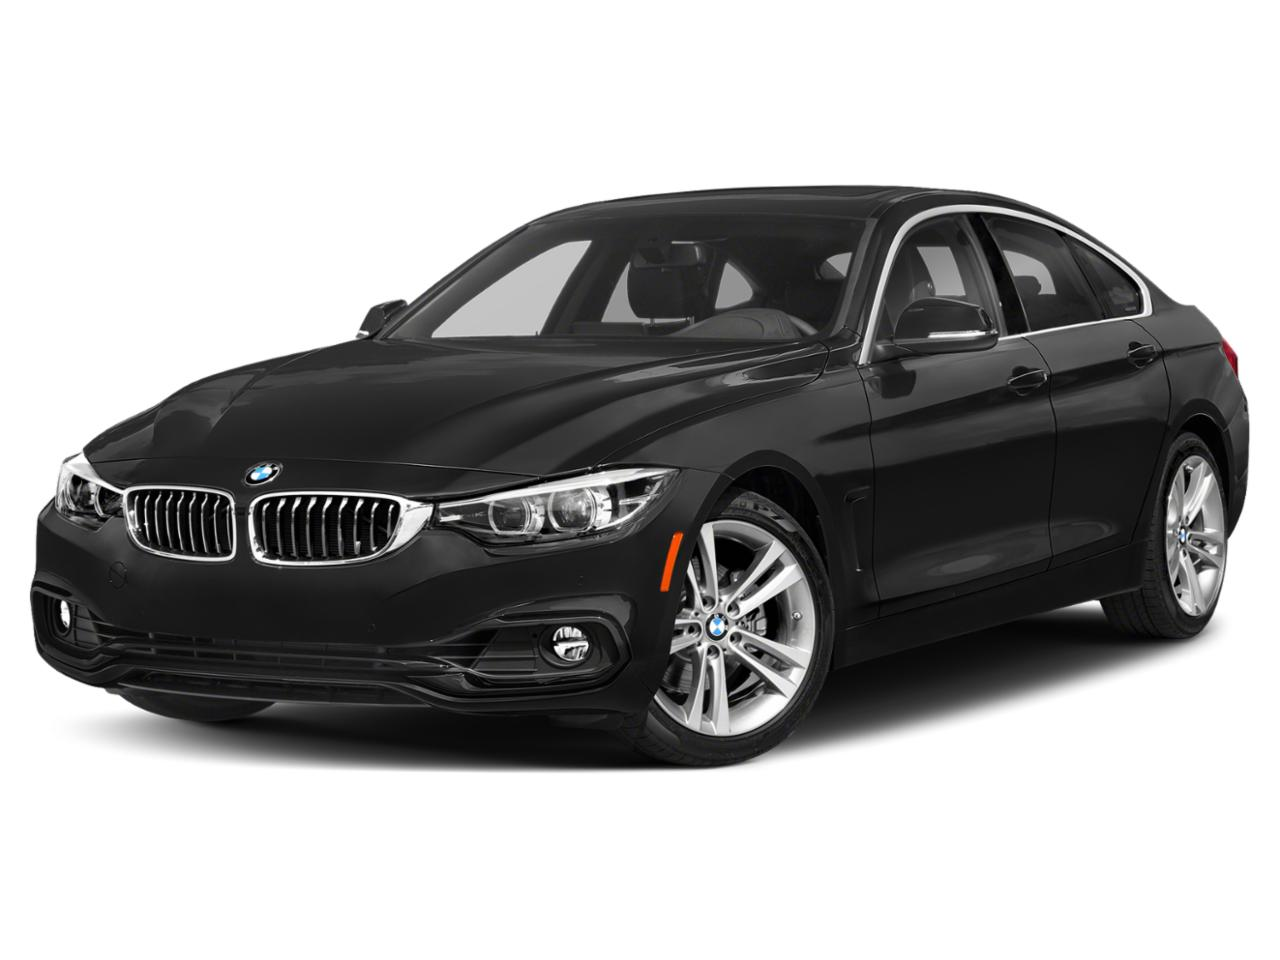 2018 BMW 430i xDrive Vehicle Photo in Spokane, WA 99207